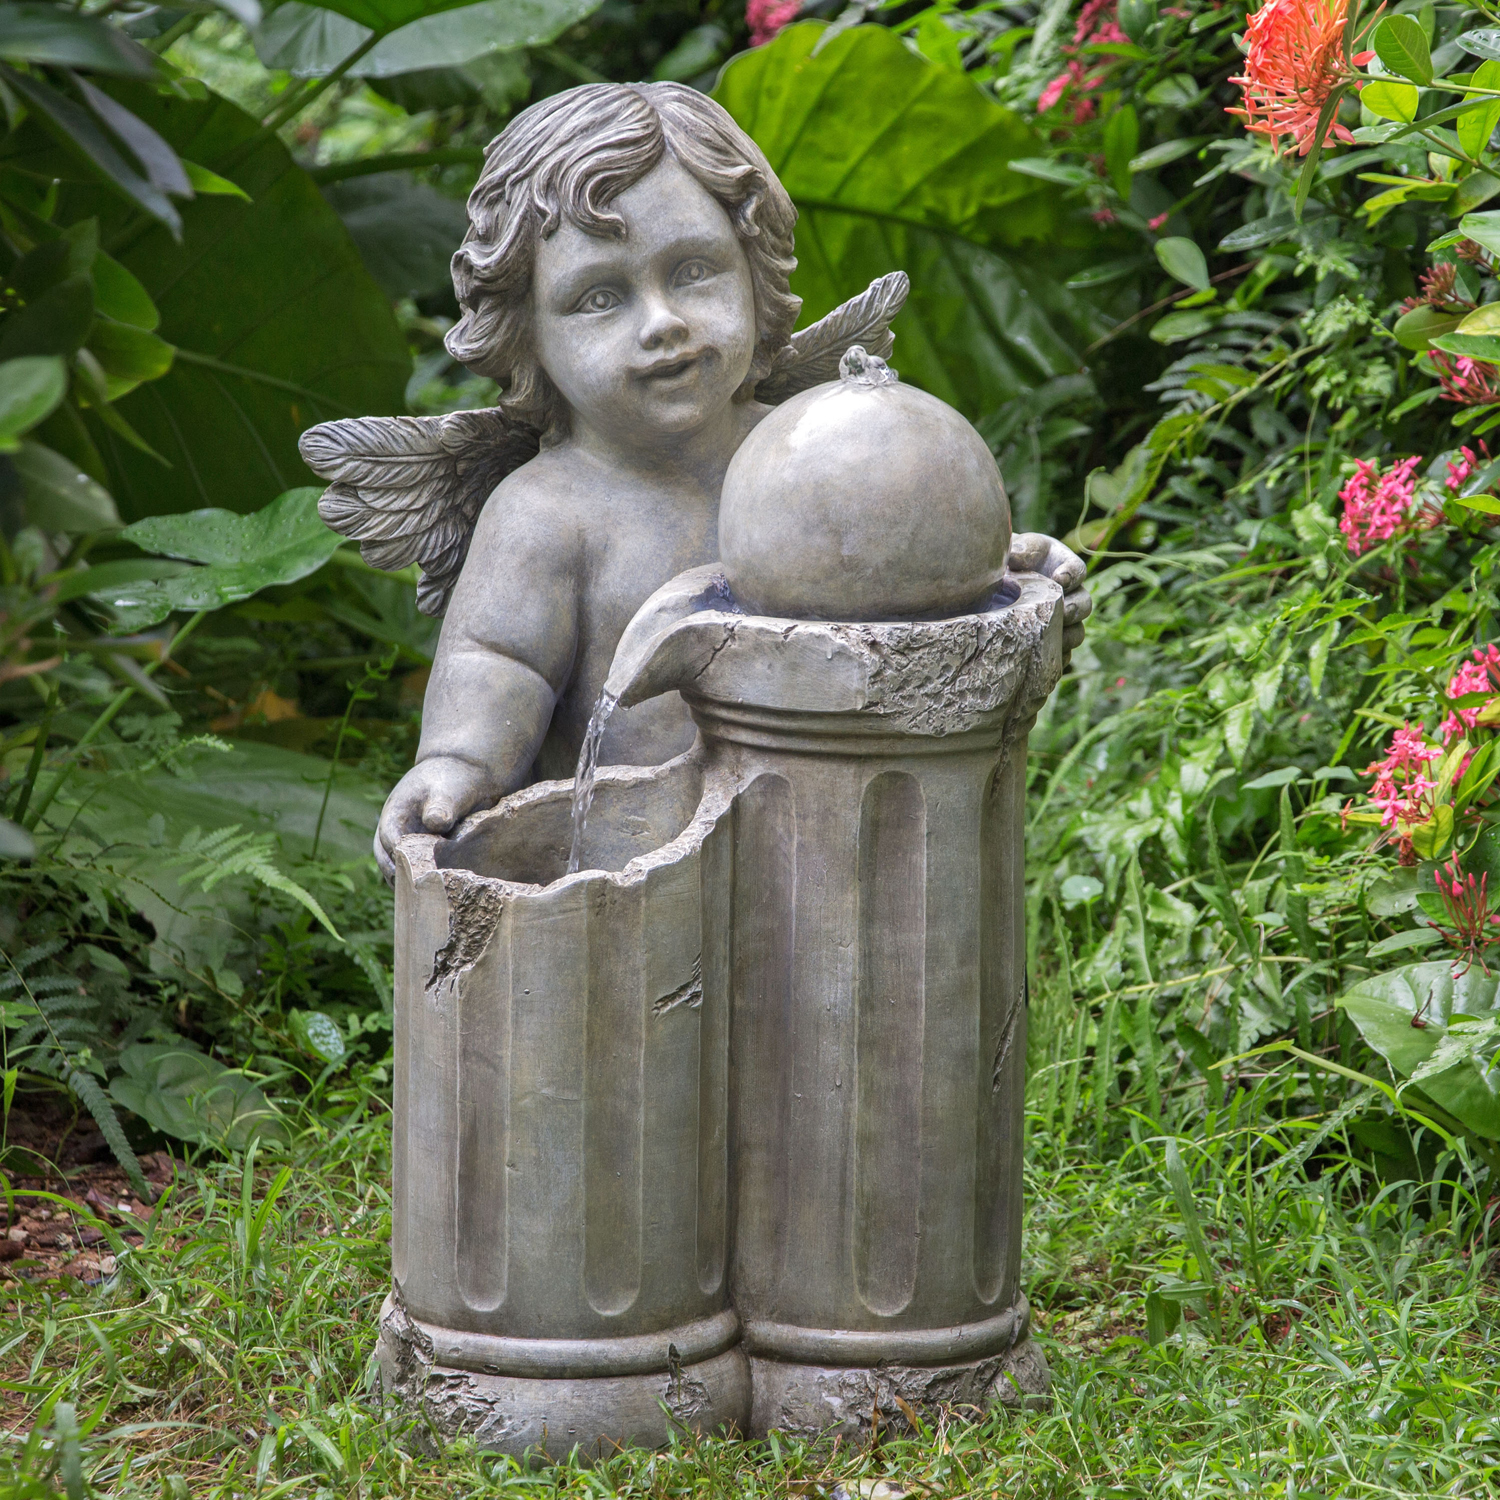 Mainstays Outdoor Cherub Pedestal Fountain by LEPOWER INTERNATIONAL CO LTD